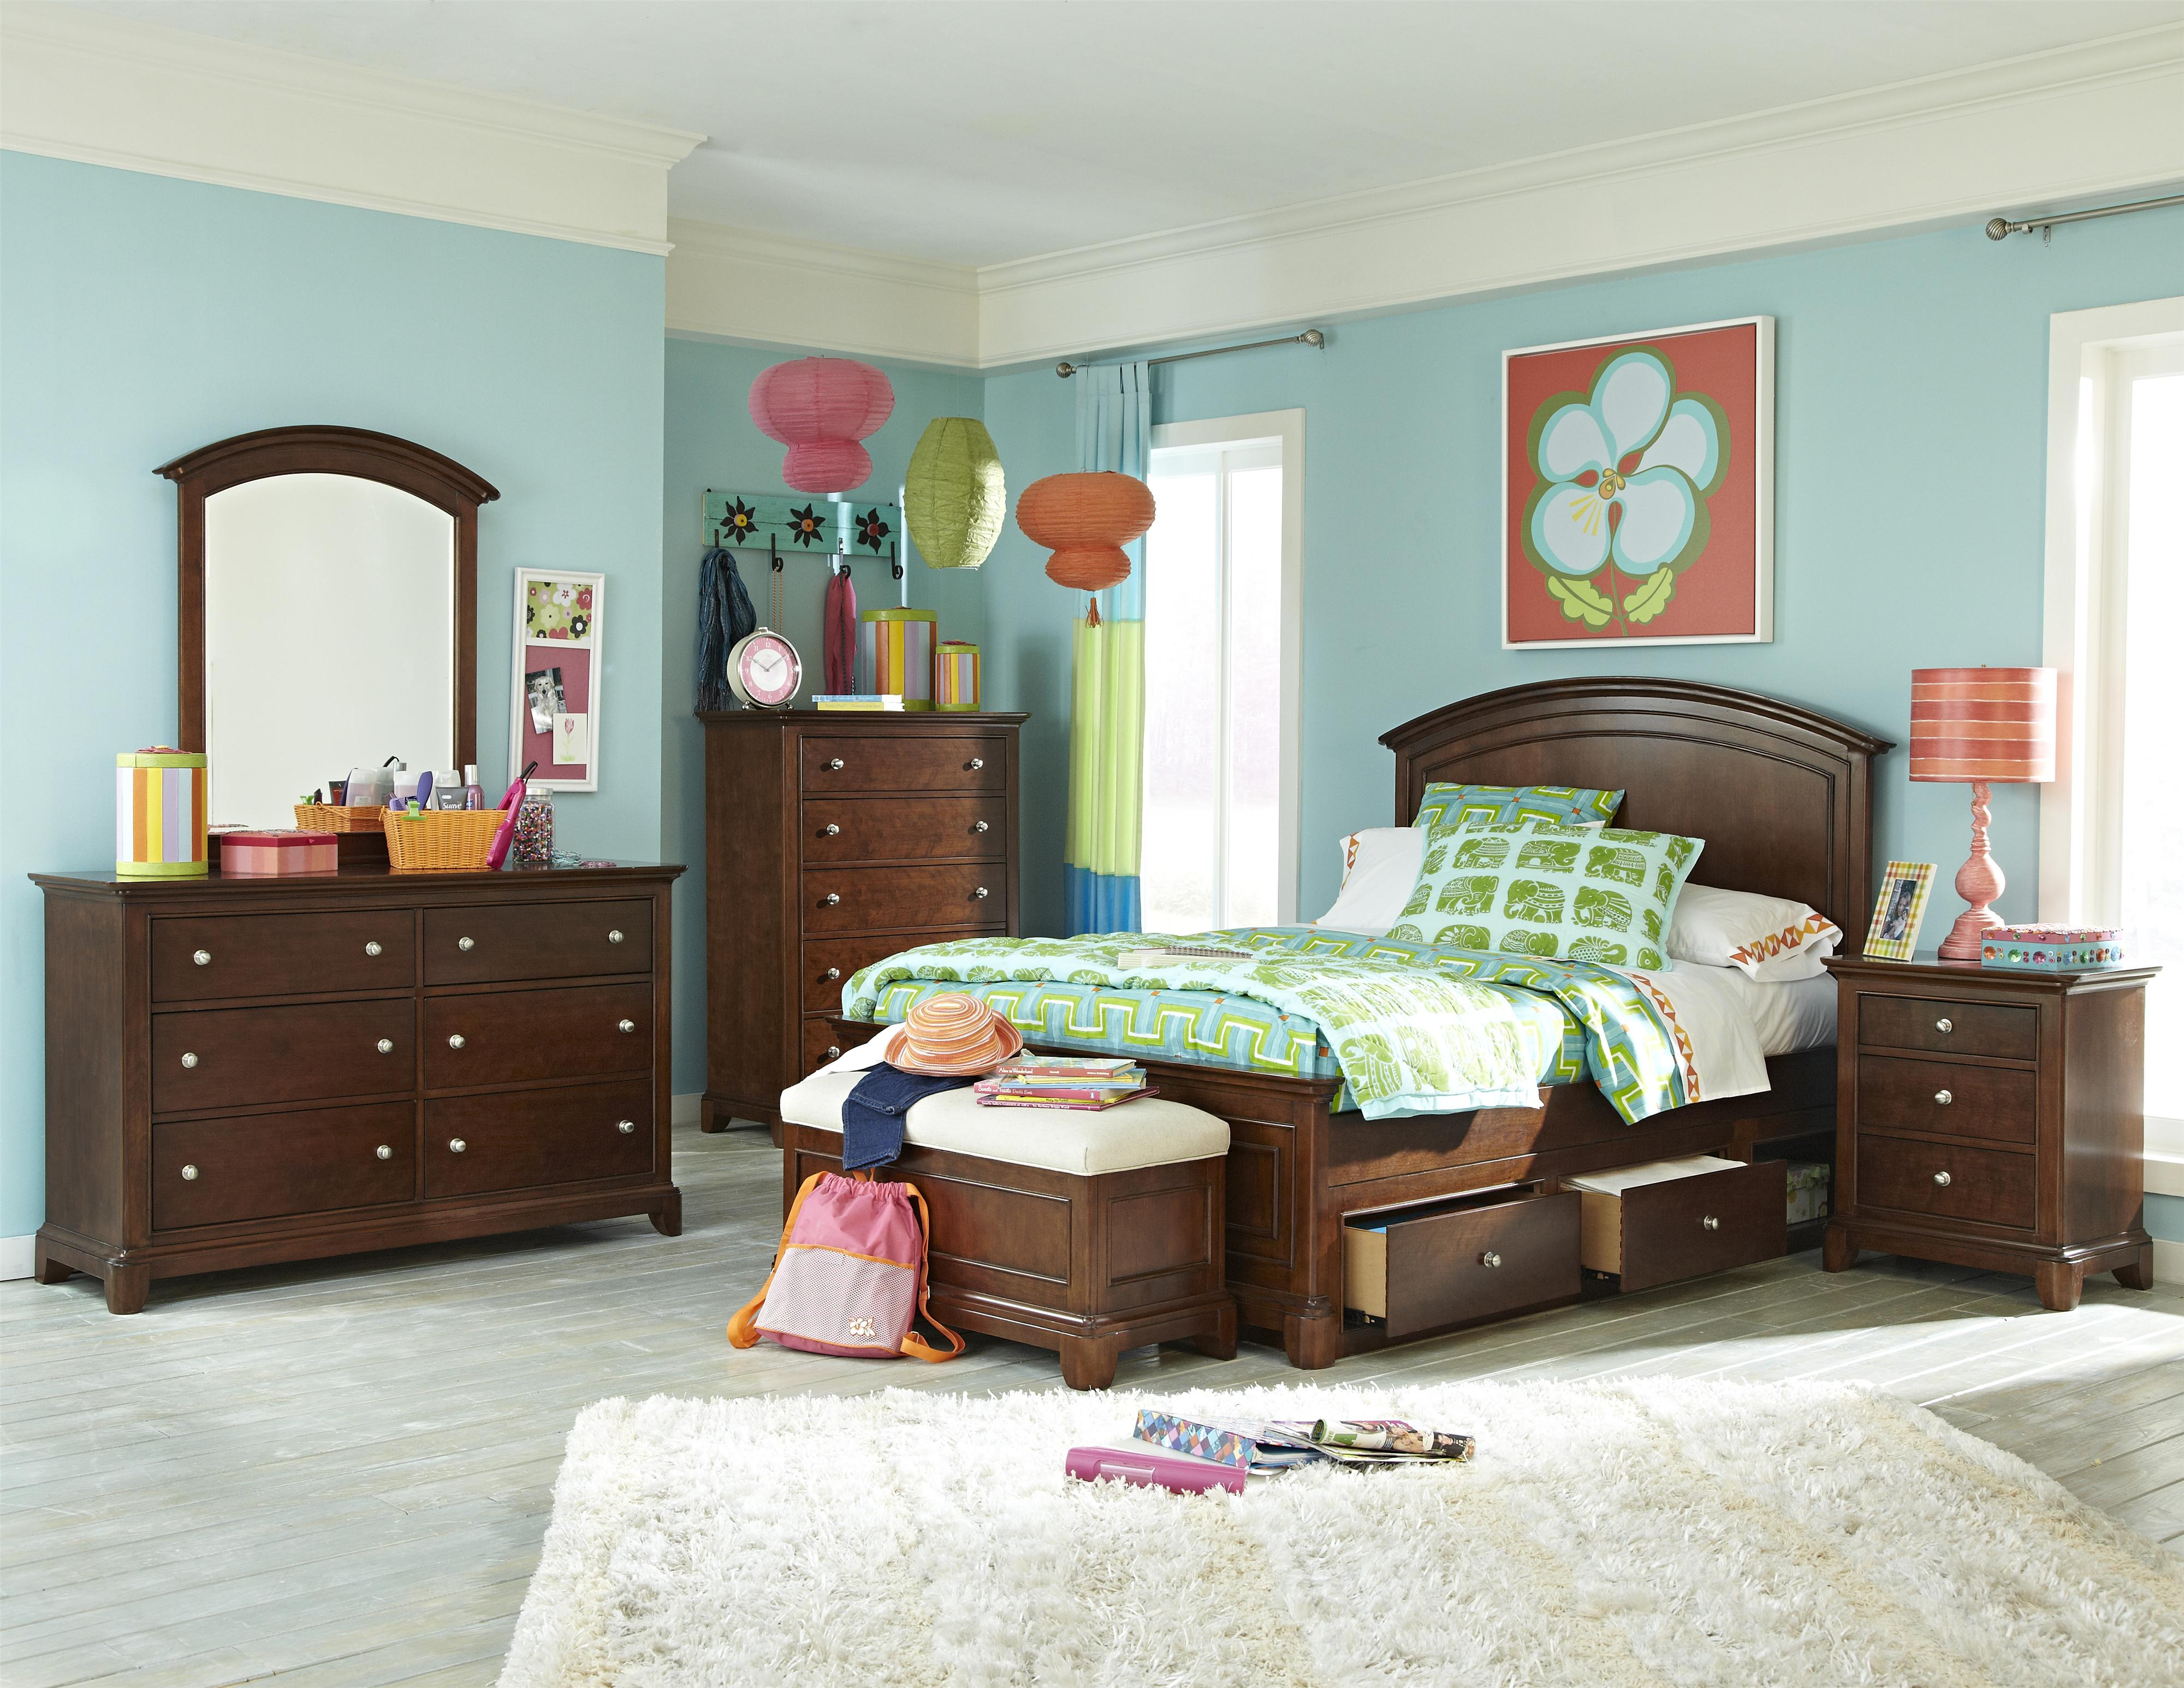 Legacy Classic Kids Impressions Full Bedroom Group - Item Number: 2880 F Bedroom Group 4